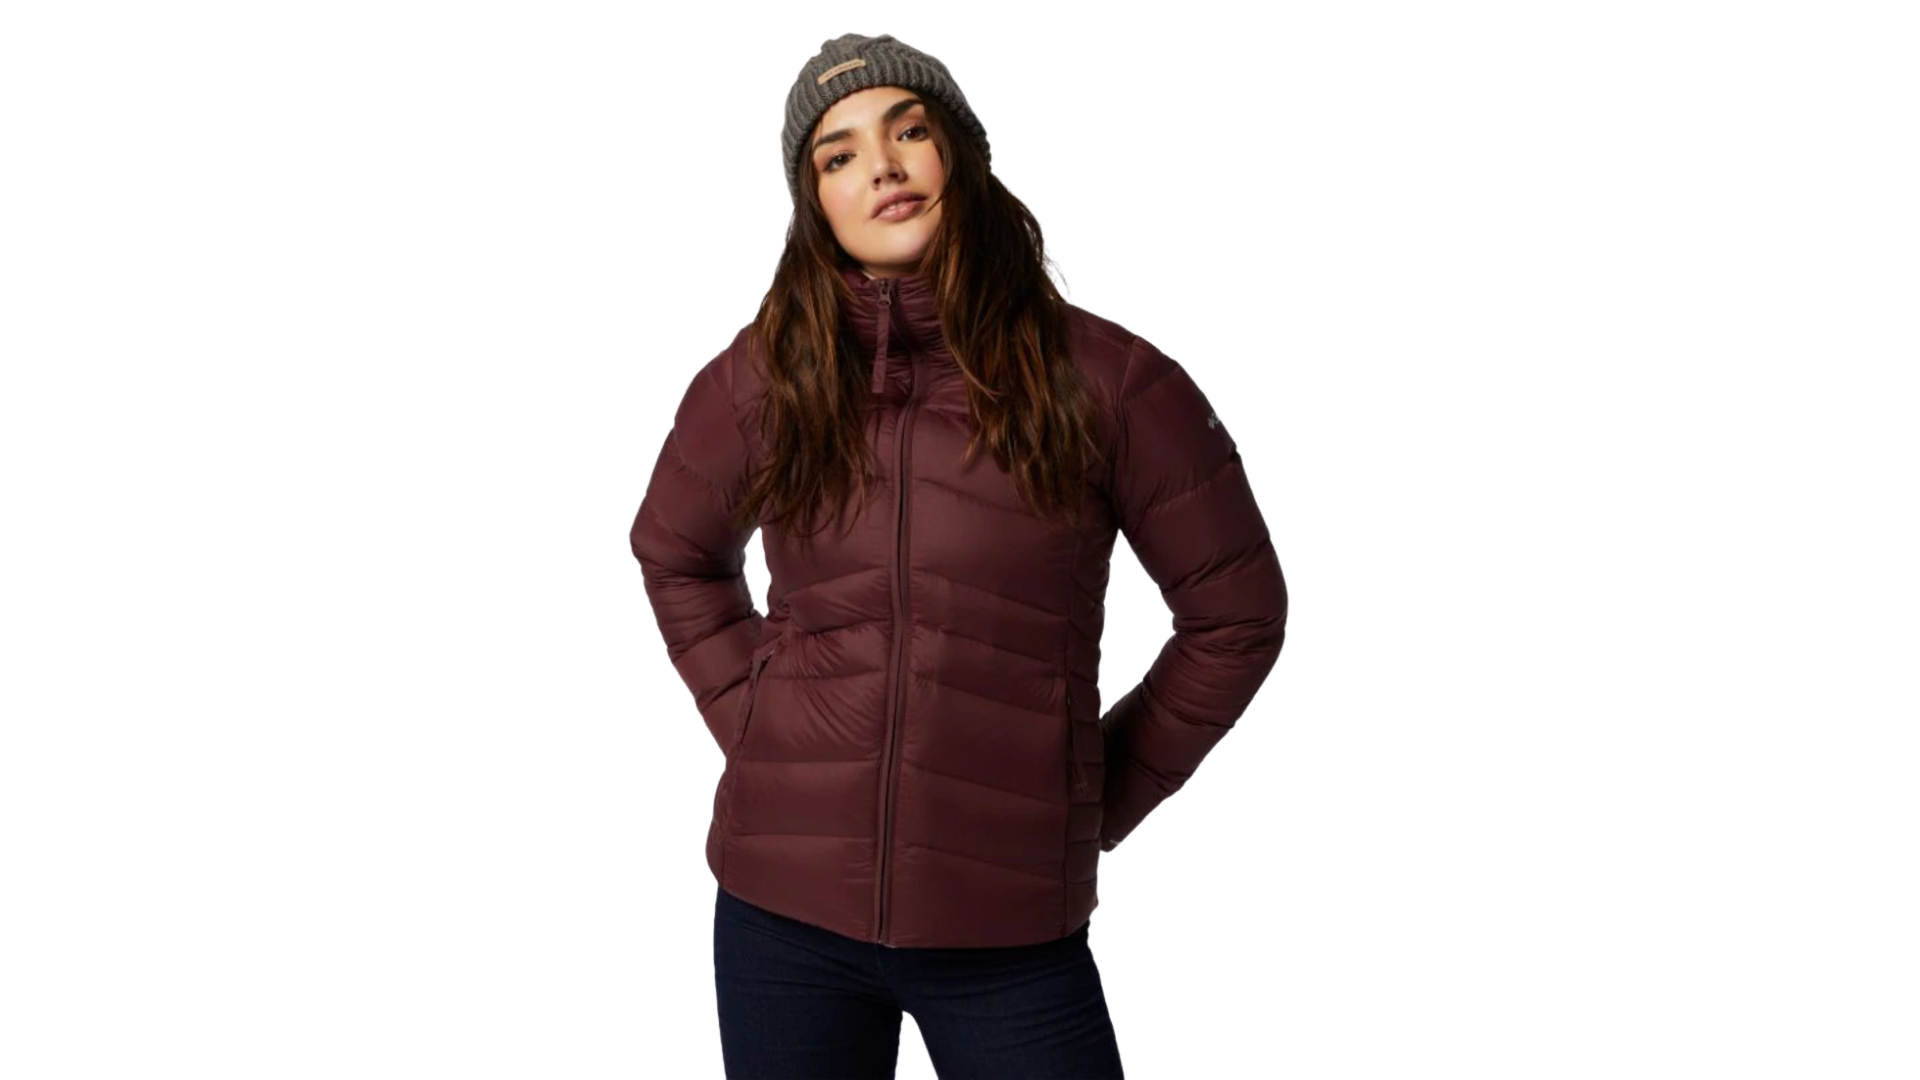 down jacket best women's winter coats for extreme cold